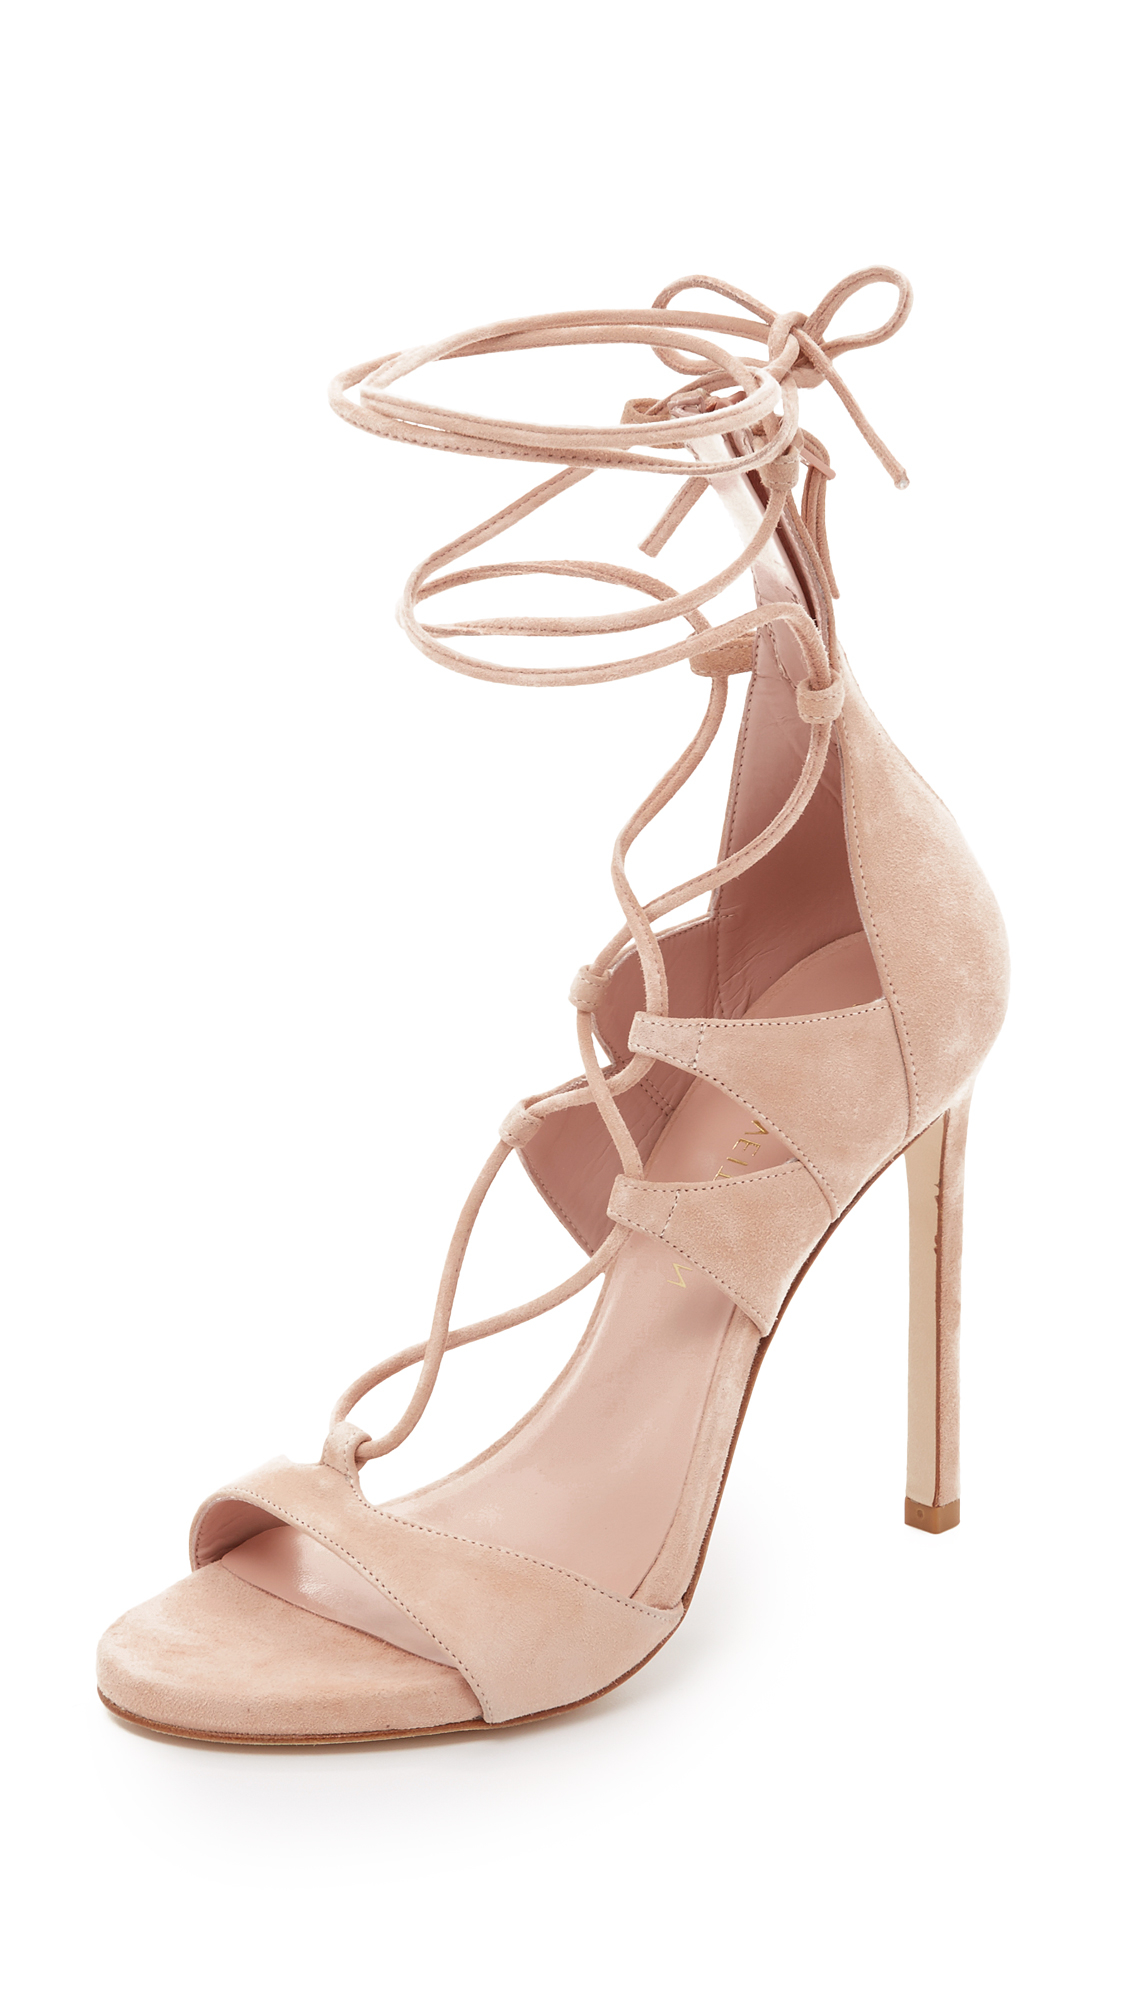 countdown package for sale Stuart Weitzman Gift Wrap Suede Sandals w/ Tags get to buy for sale comfortable cheap good selling clearance from china uBSfLkH